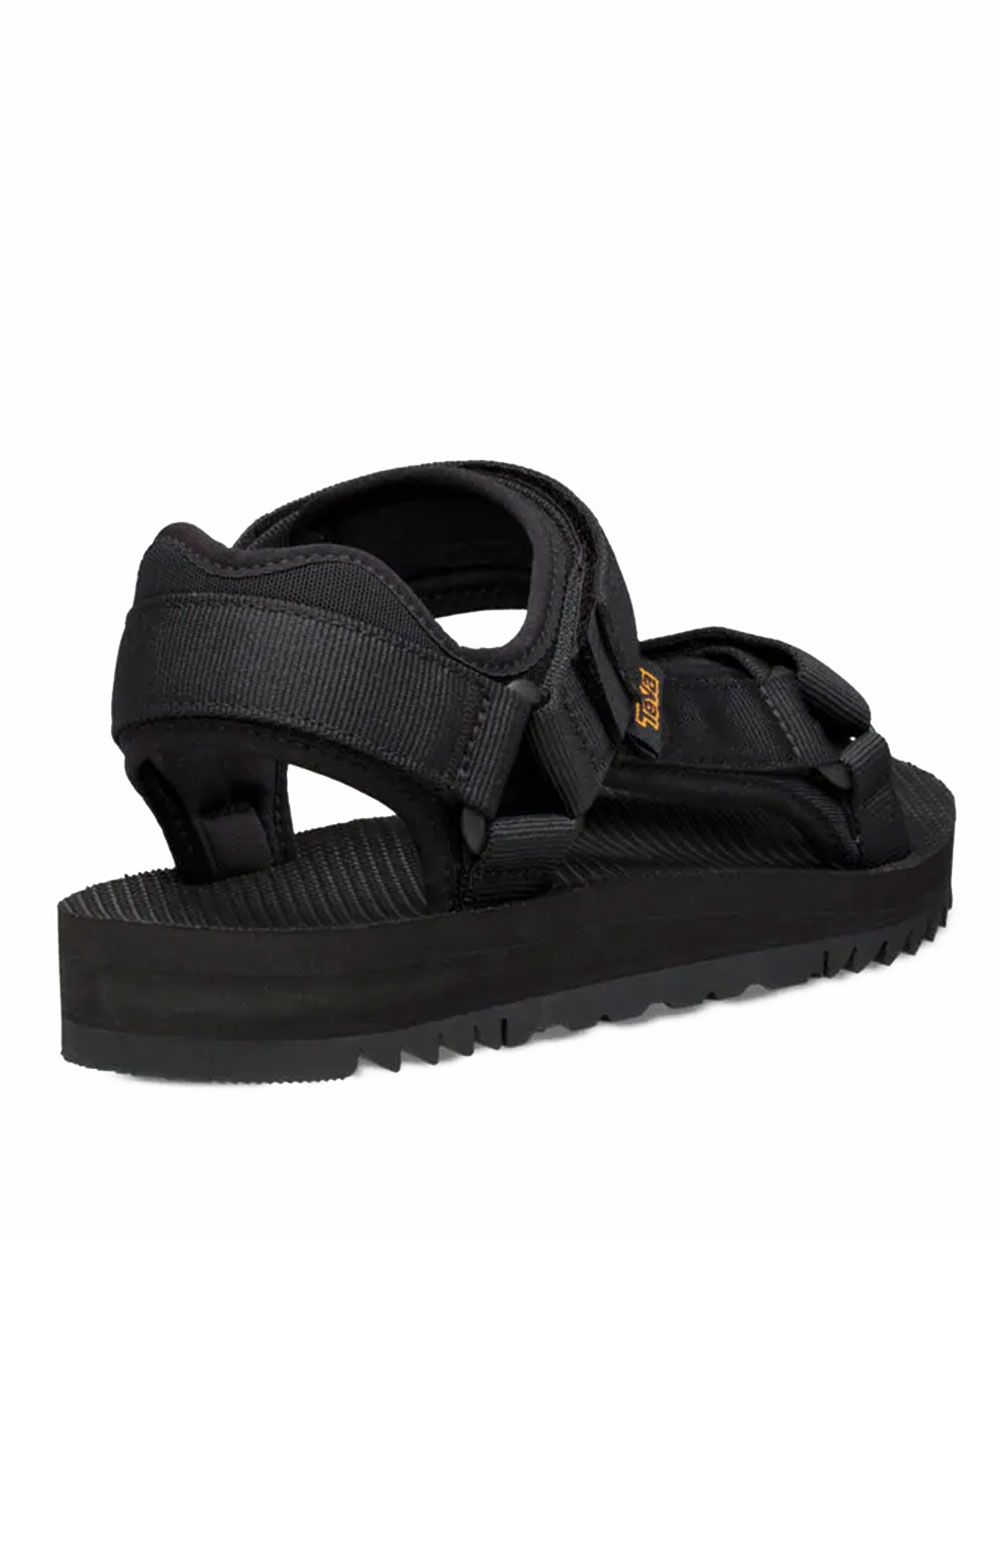 (1106786) Universal Trail Sandals - Pottery Black/Taupe  4